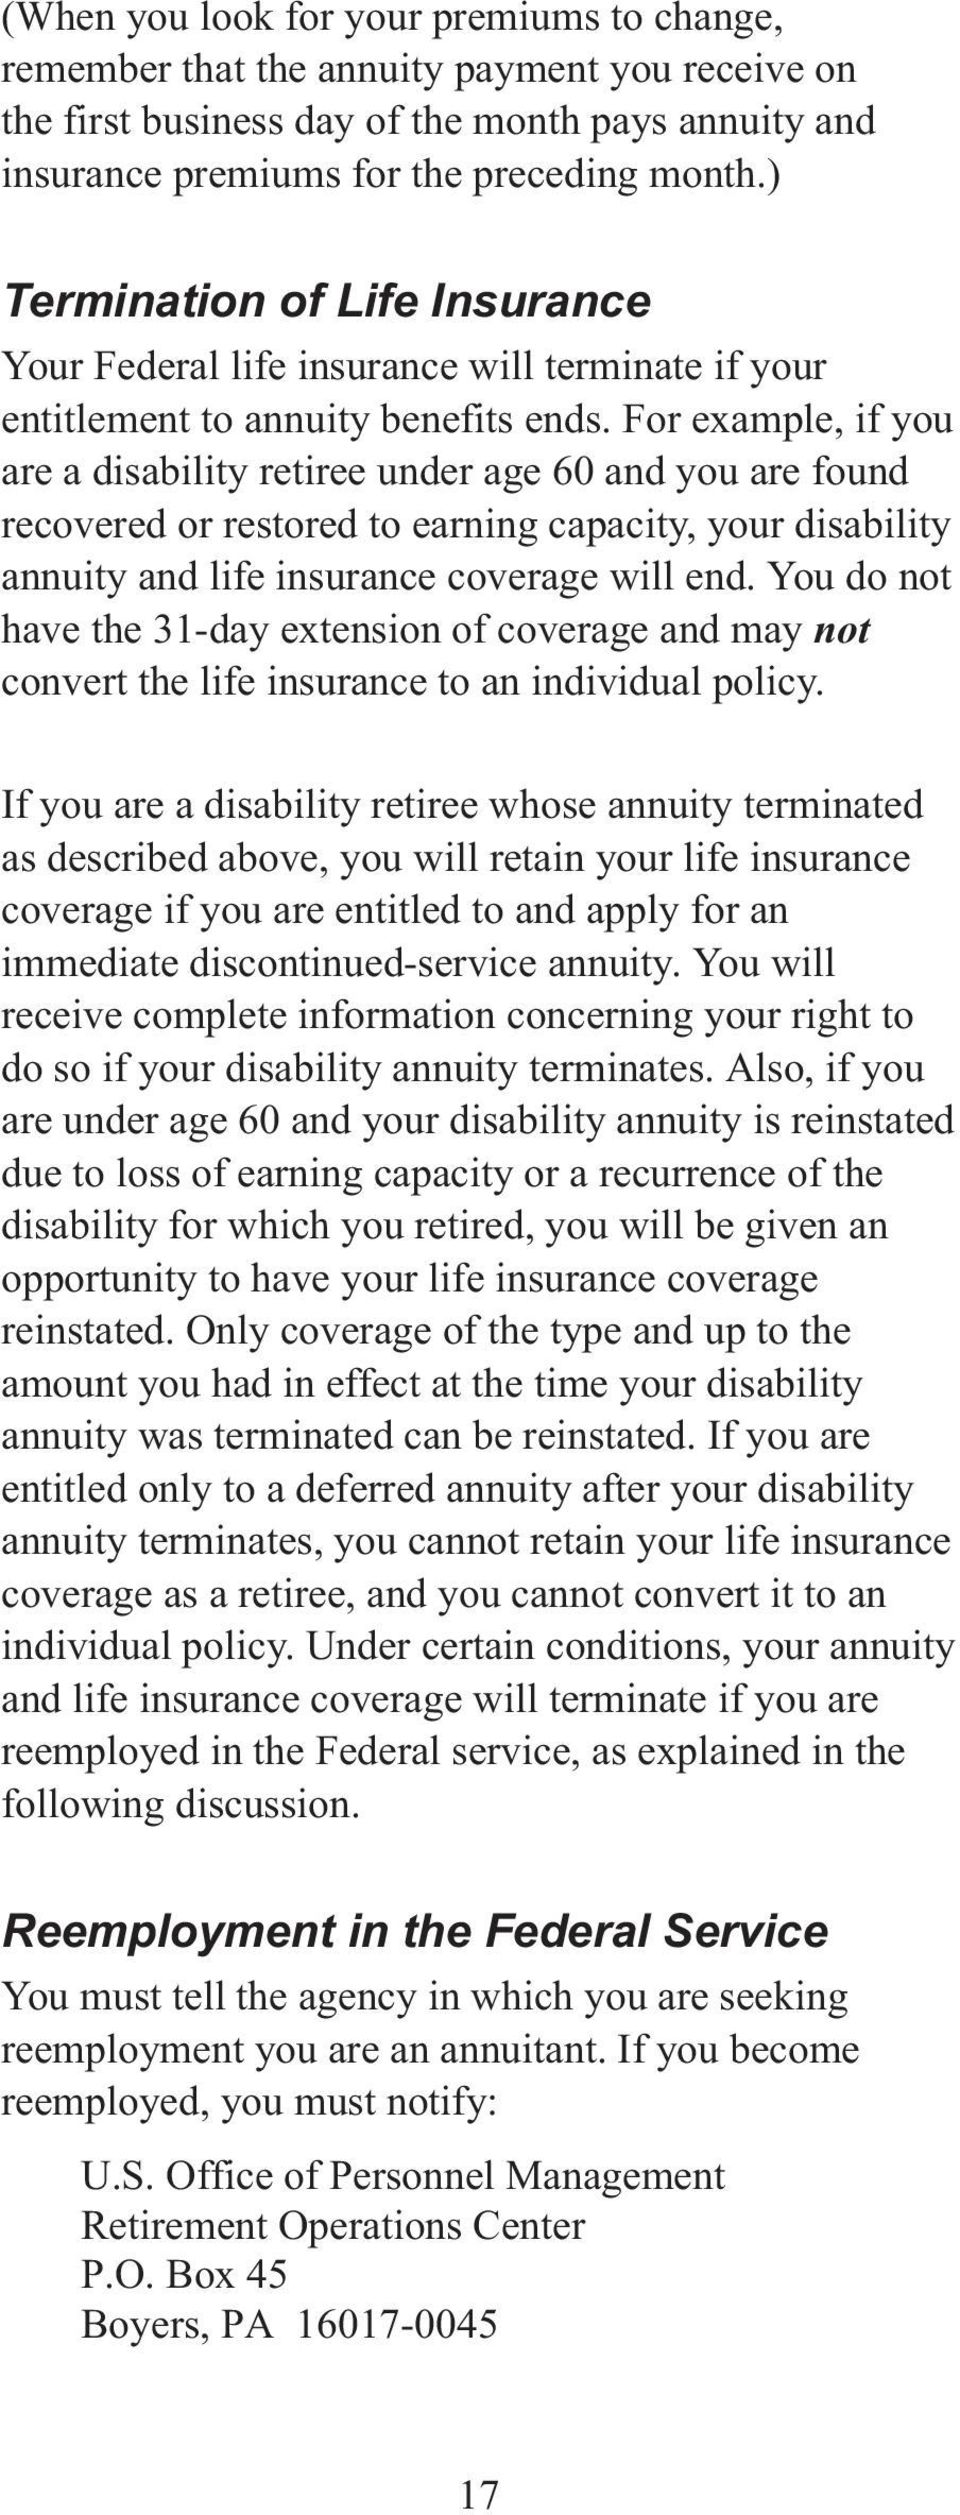 For example, if you are a disability retiree under age 60 and you are found recovered or restored to earning capacity, your disability annuity and life insurance coverage will end.